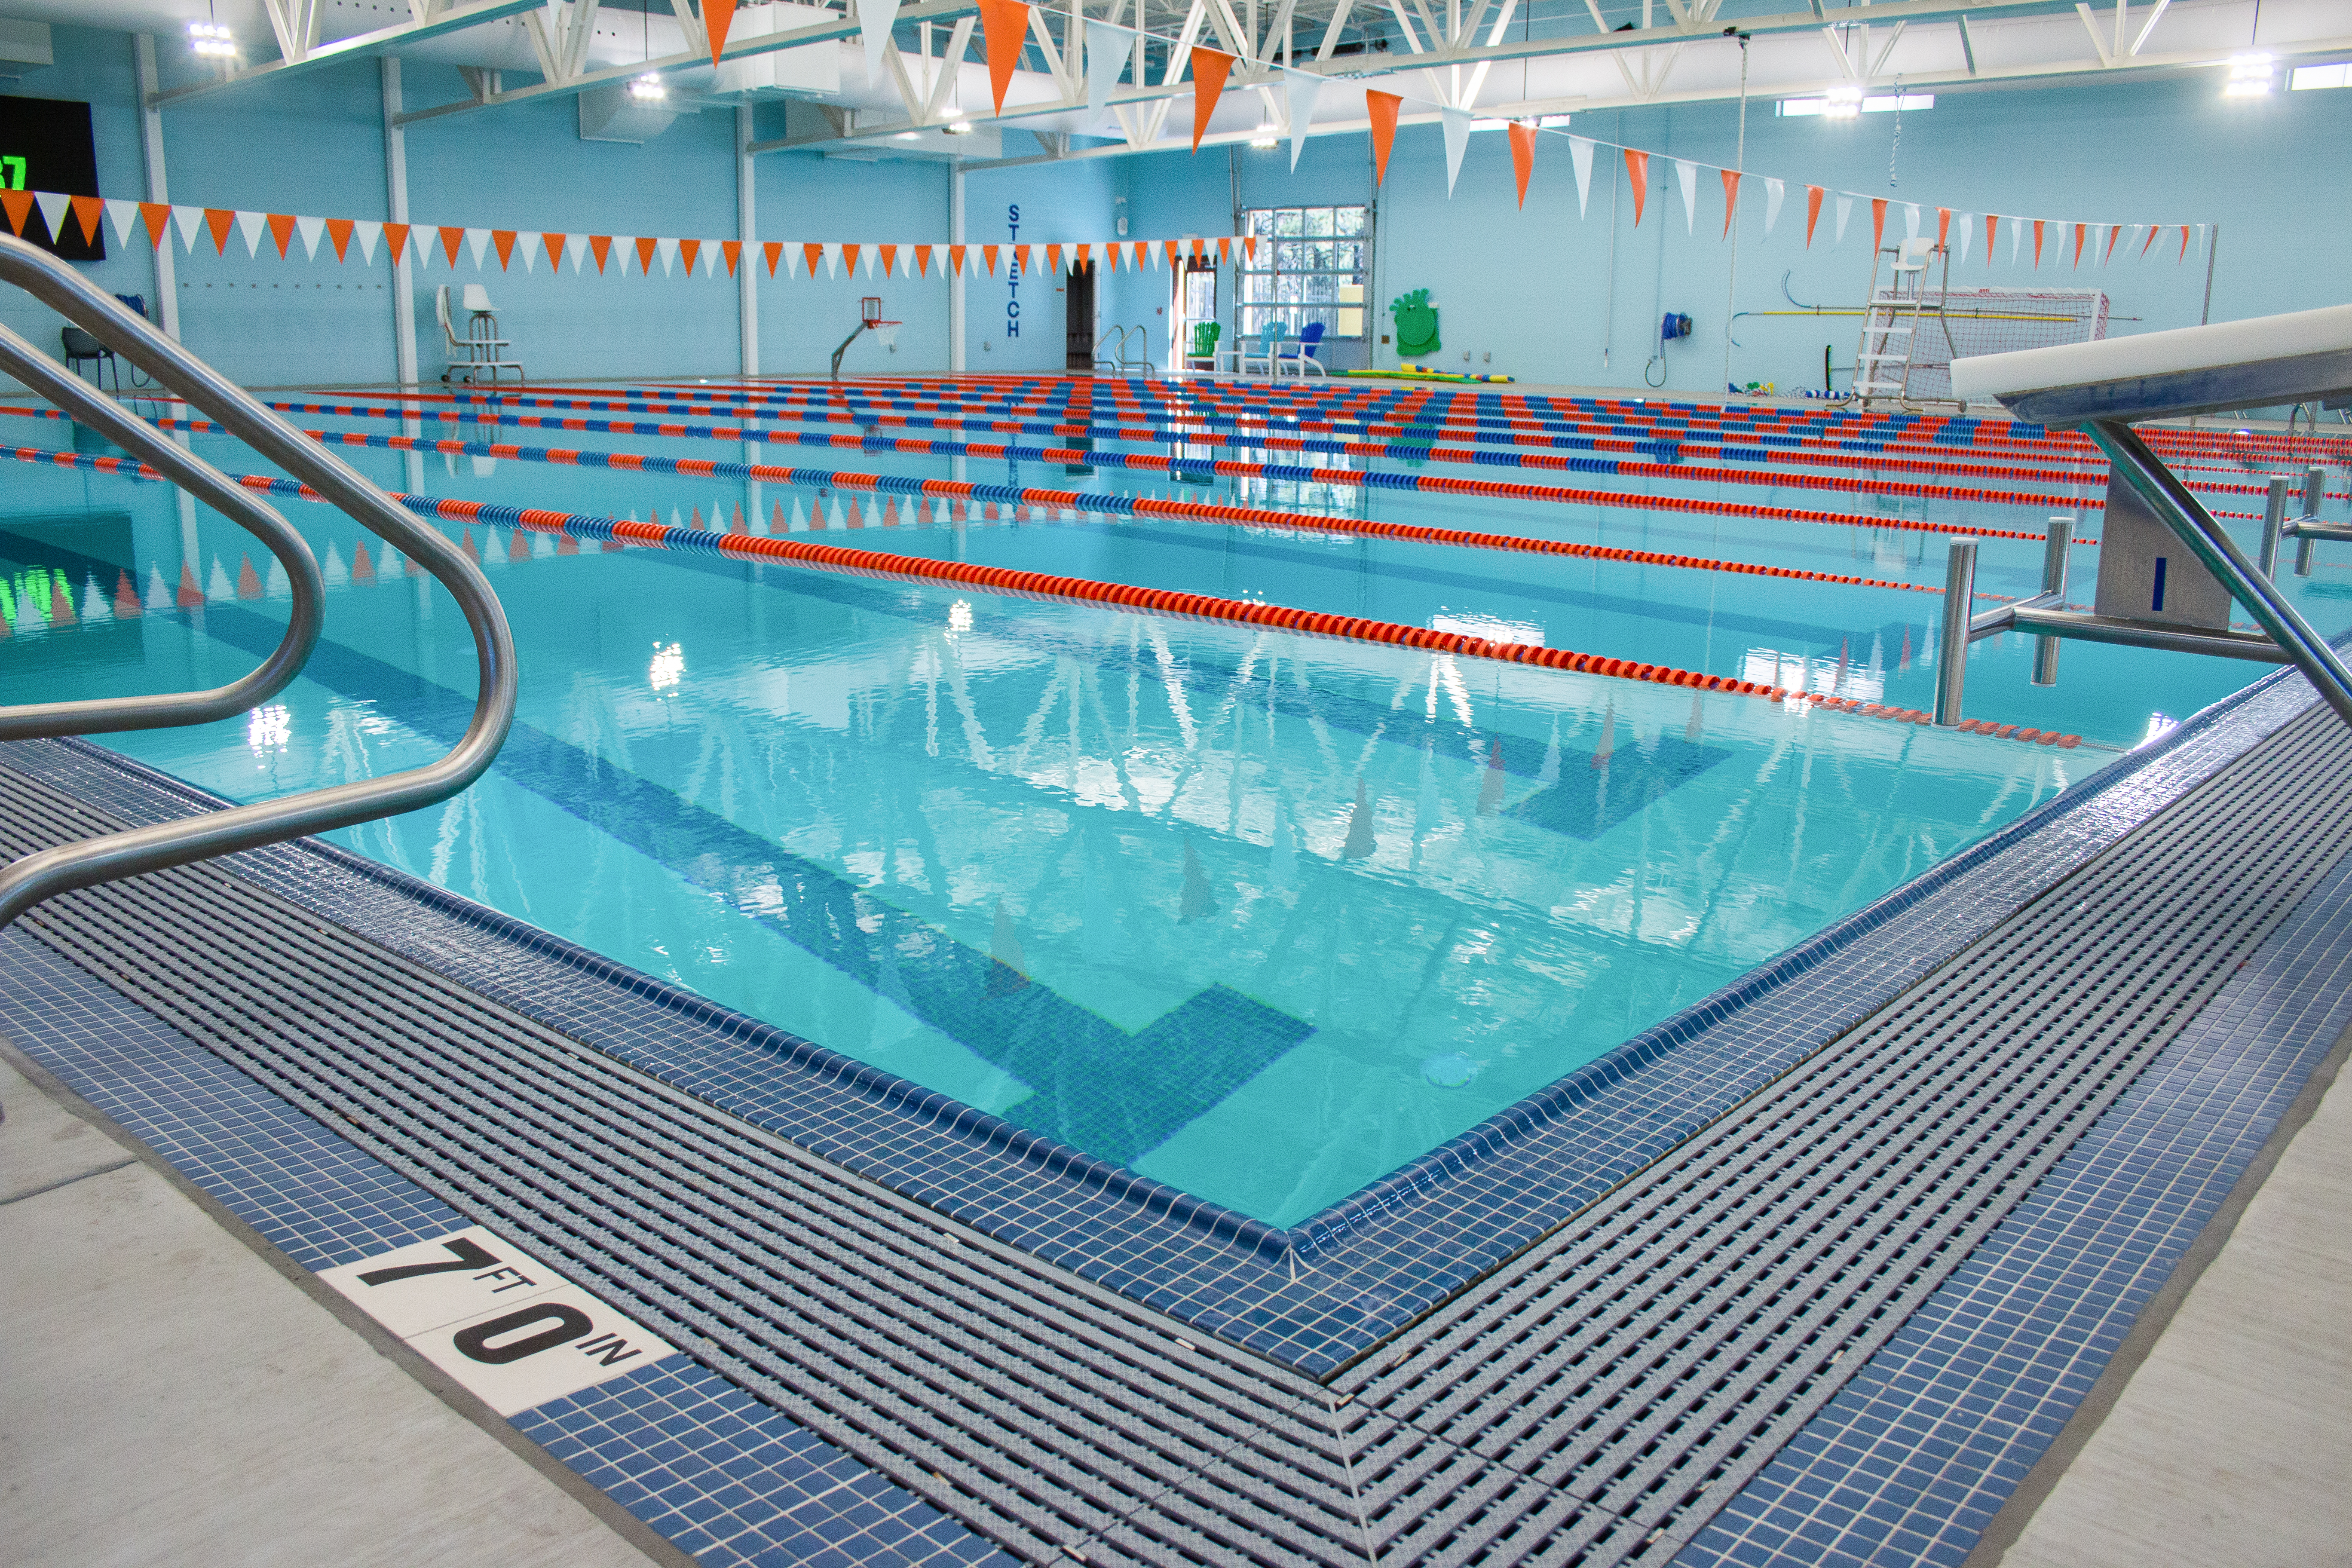 Truckee Donner Aquatic Center